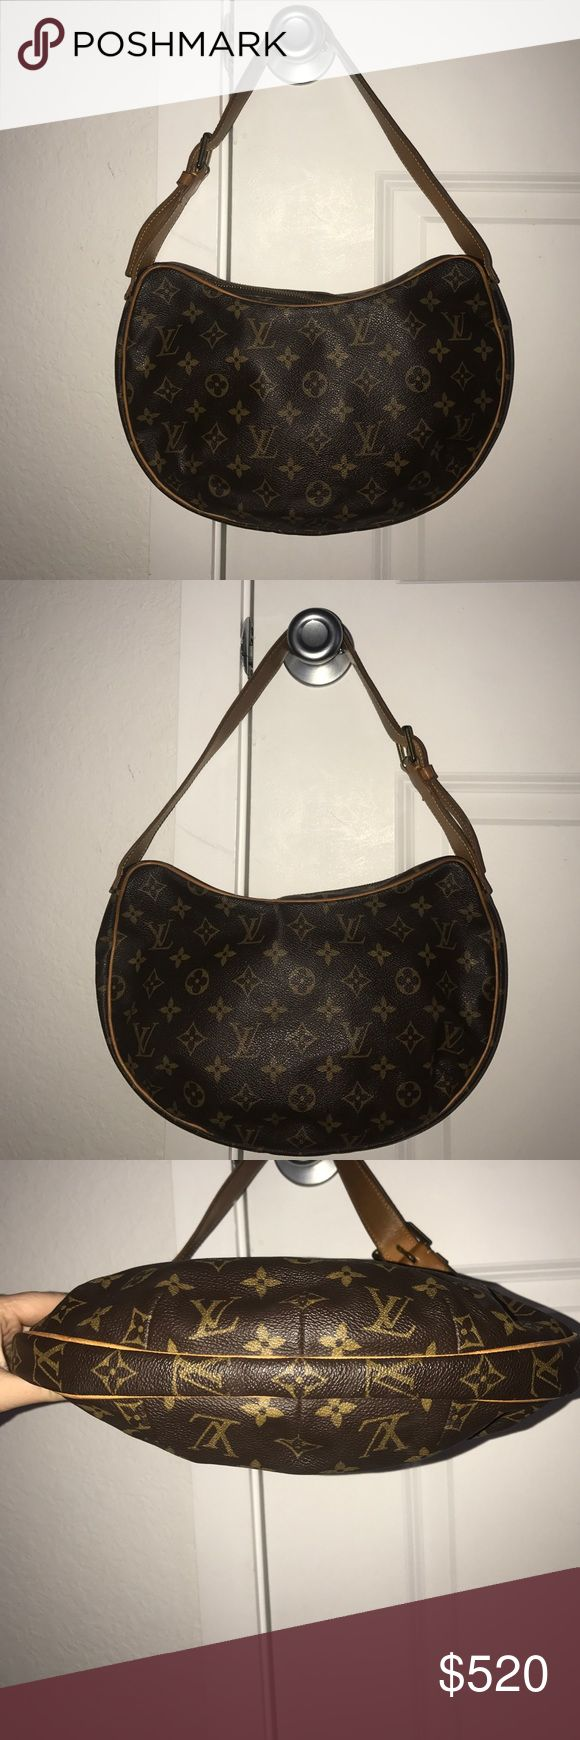 louis vuitton croissant mm Beautiful louis vuitton croissant mm is in good condition the piping around bag is good no tearing or scuffs the gold hard ware has discoloration and the straps have darkend from use of wear but over all in really good condition comes with dust bag Louis Vuitton Bags